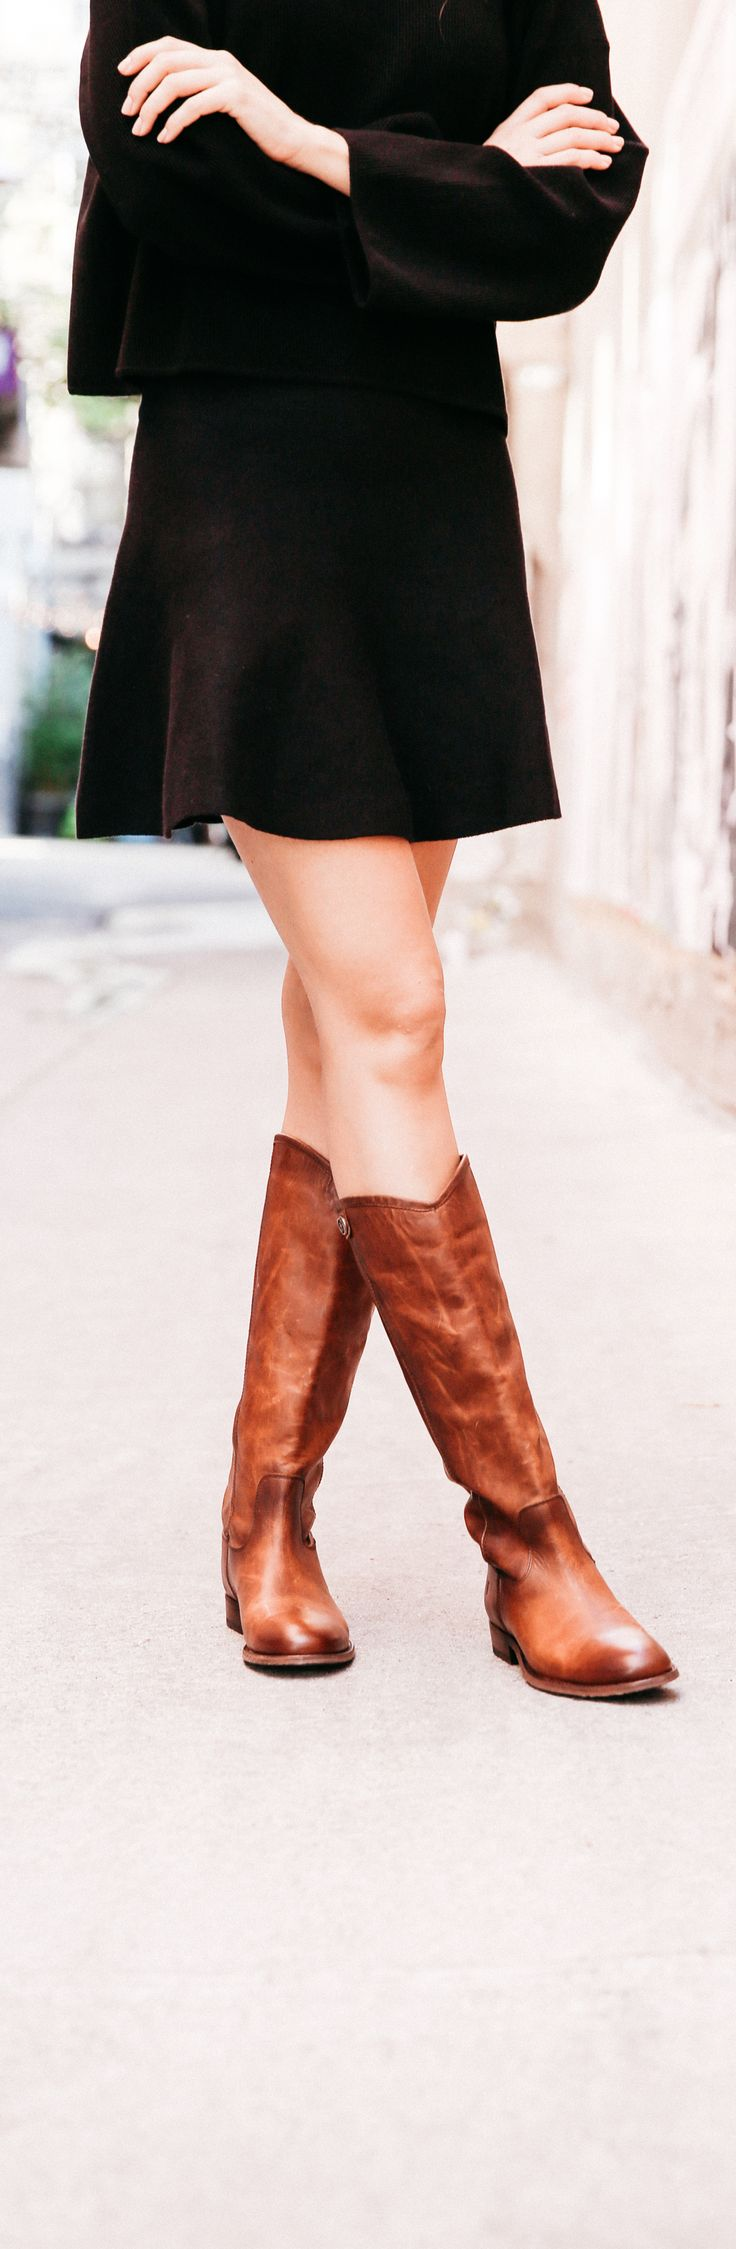 Melissa Button 2 Boots | The Frye Company